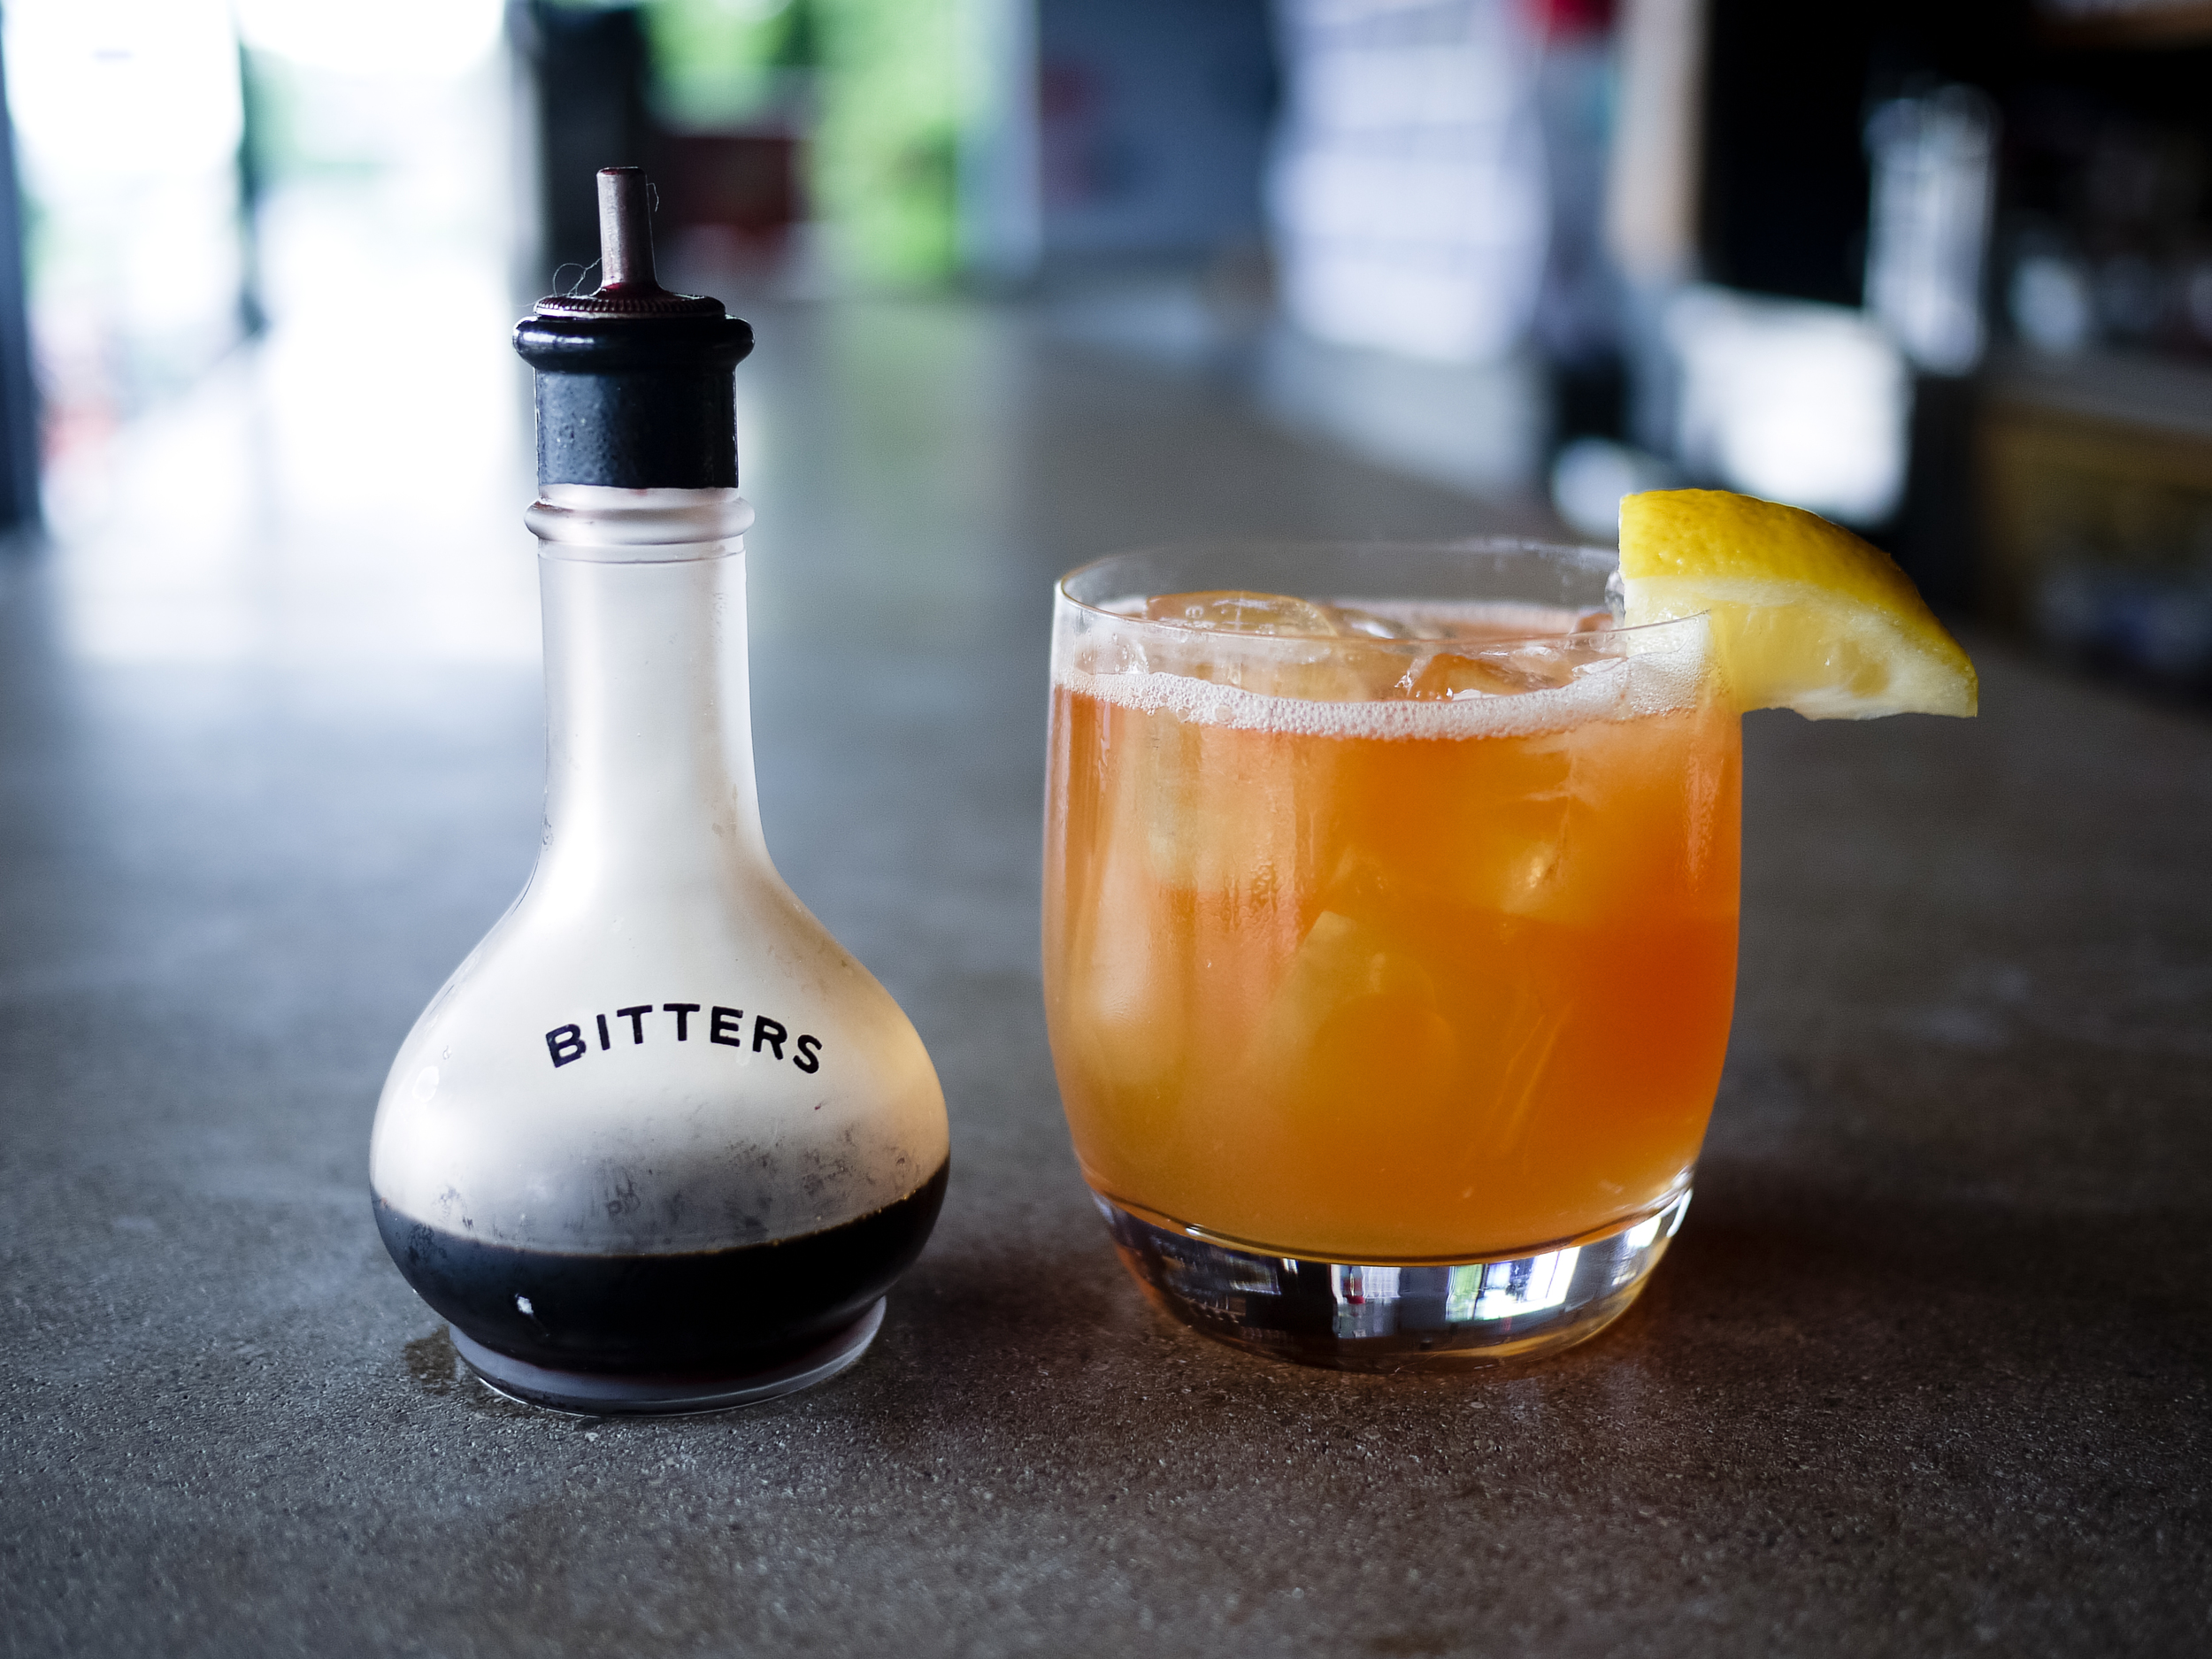 House-made aromatic bitters and a Cardinal Sling cocktail.